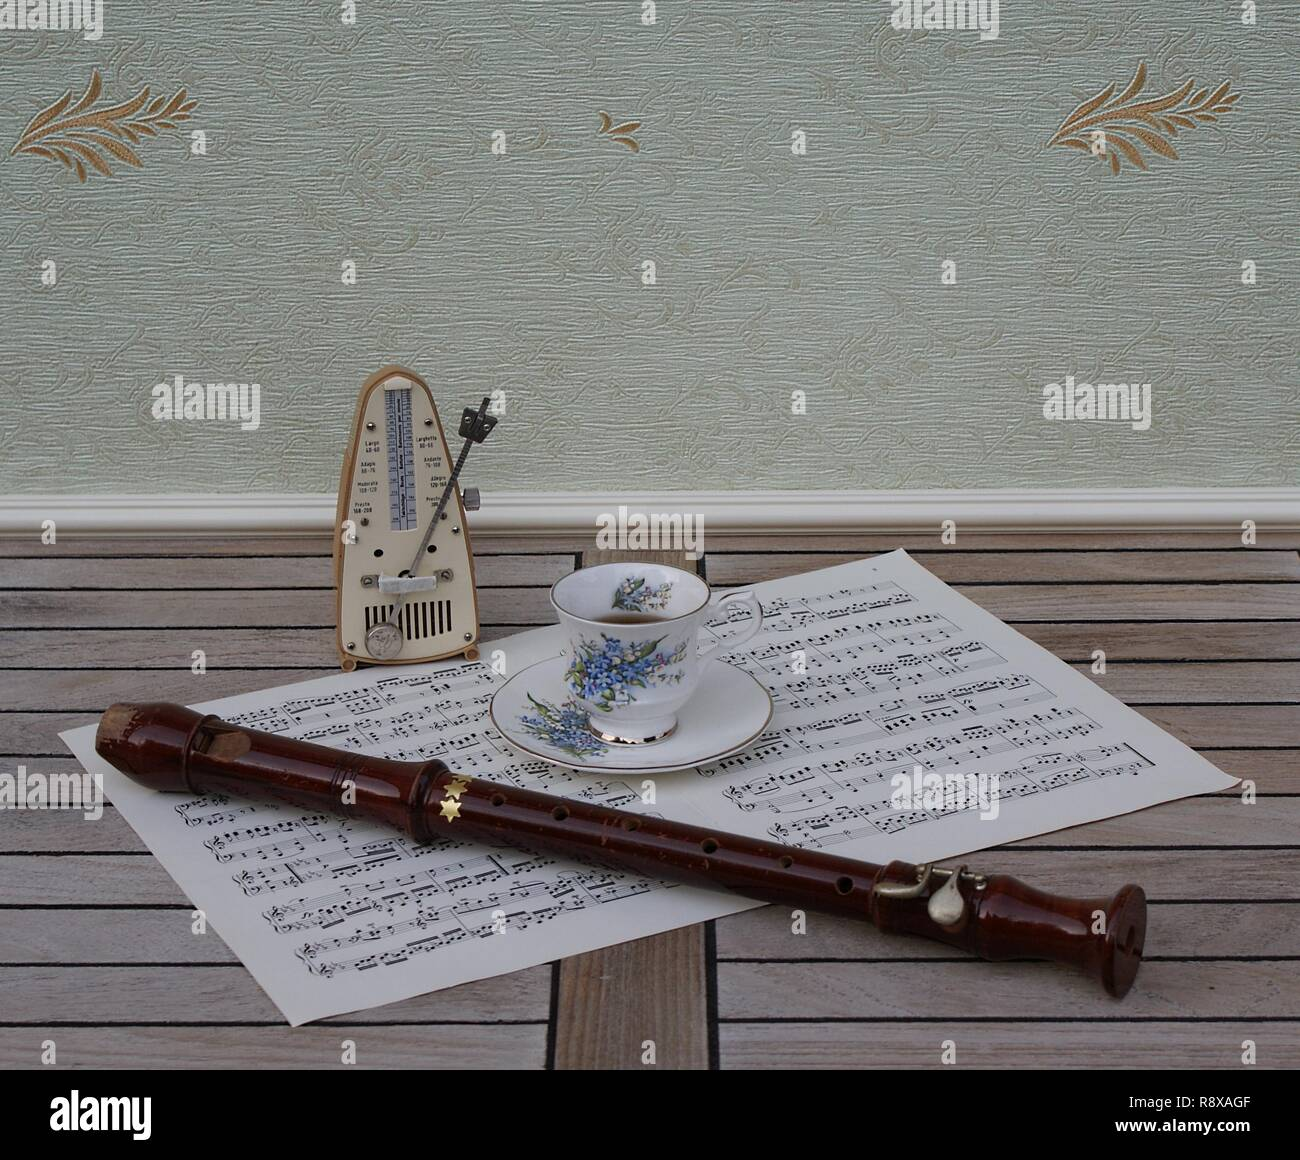 English teacup and saucer with floral decor and silver rim, metronome for music and a block flute on a sheet of music - Stock Image